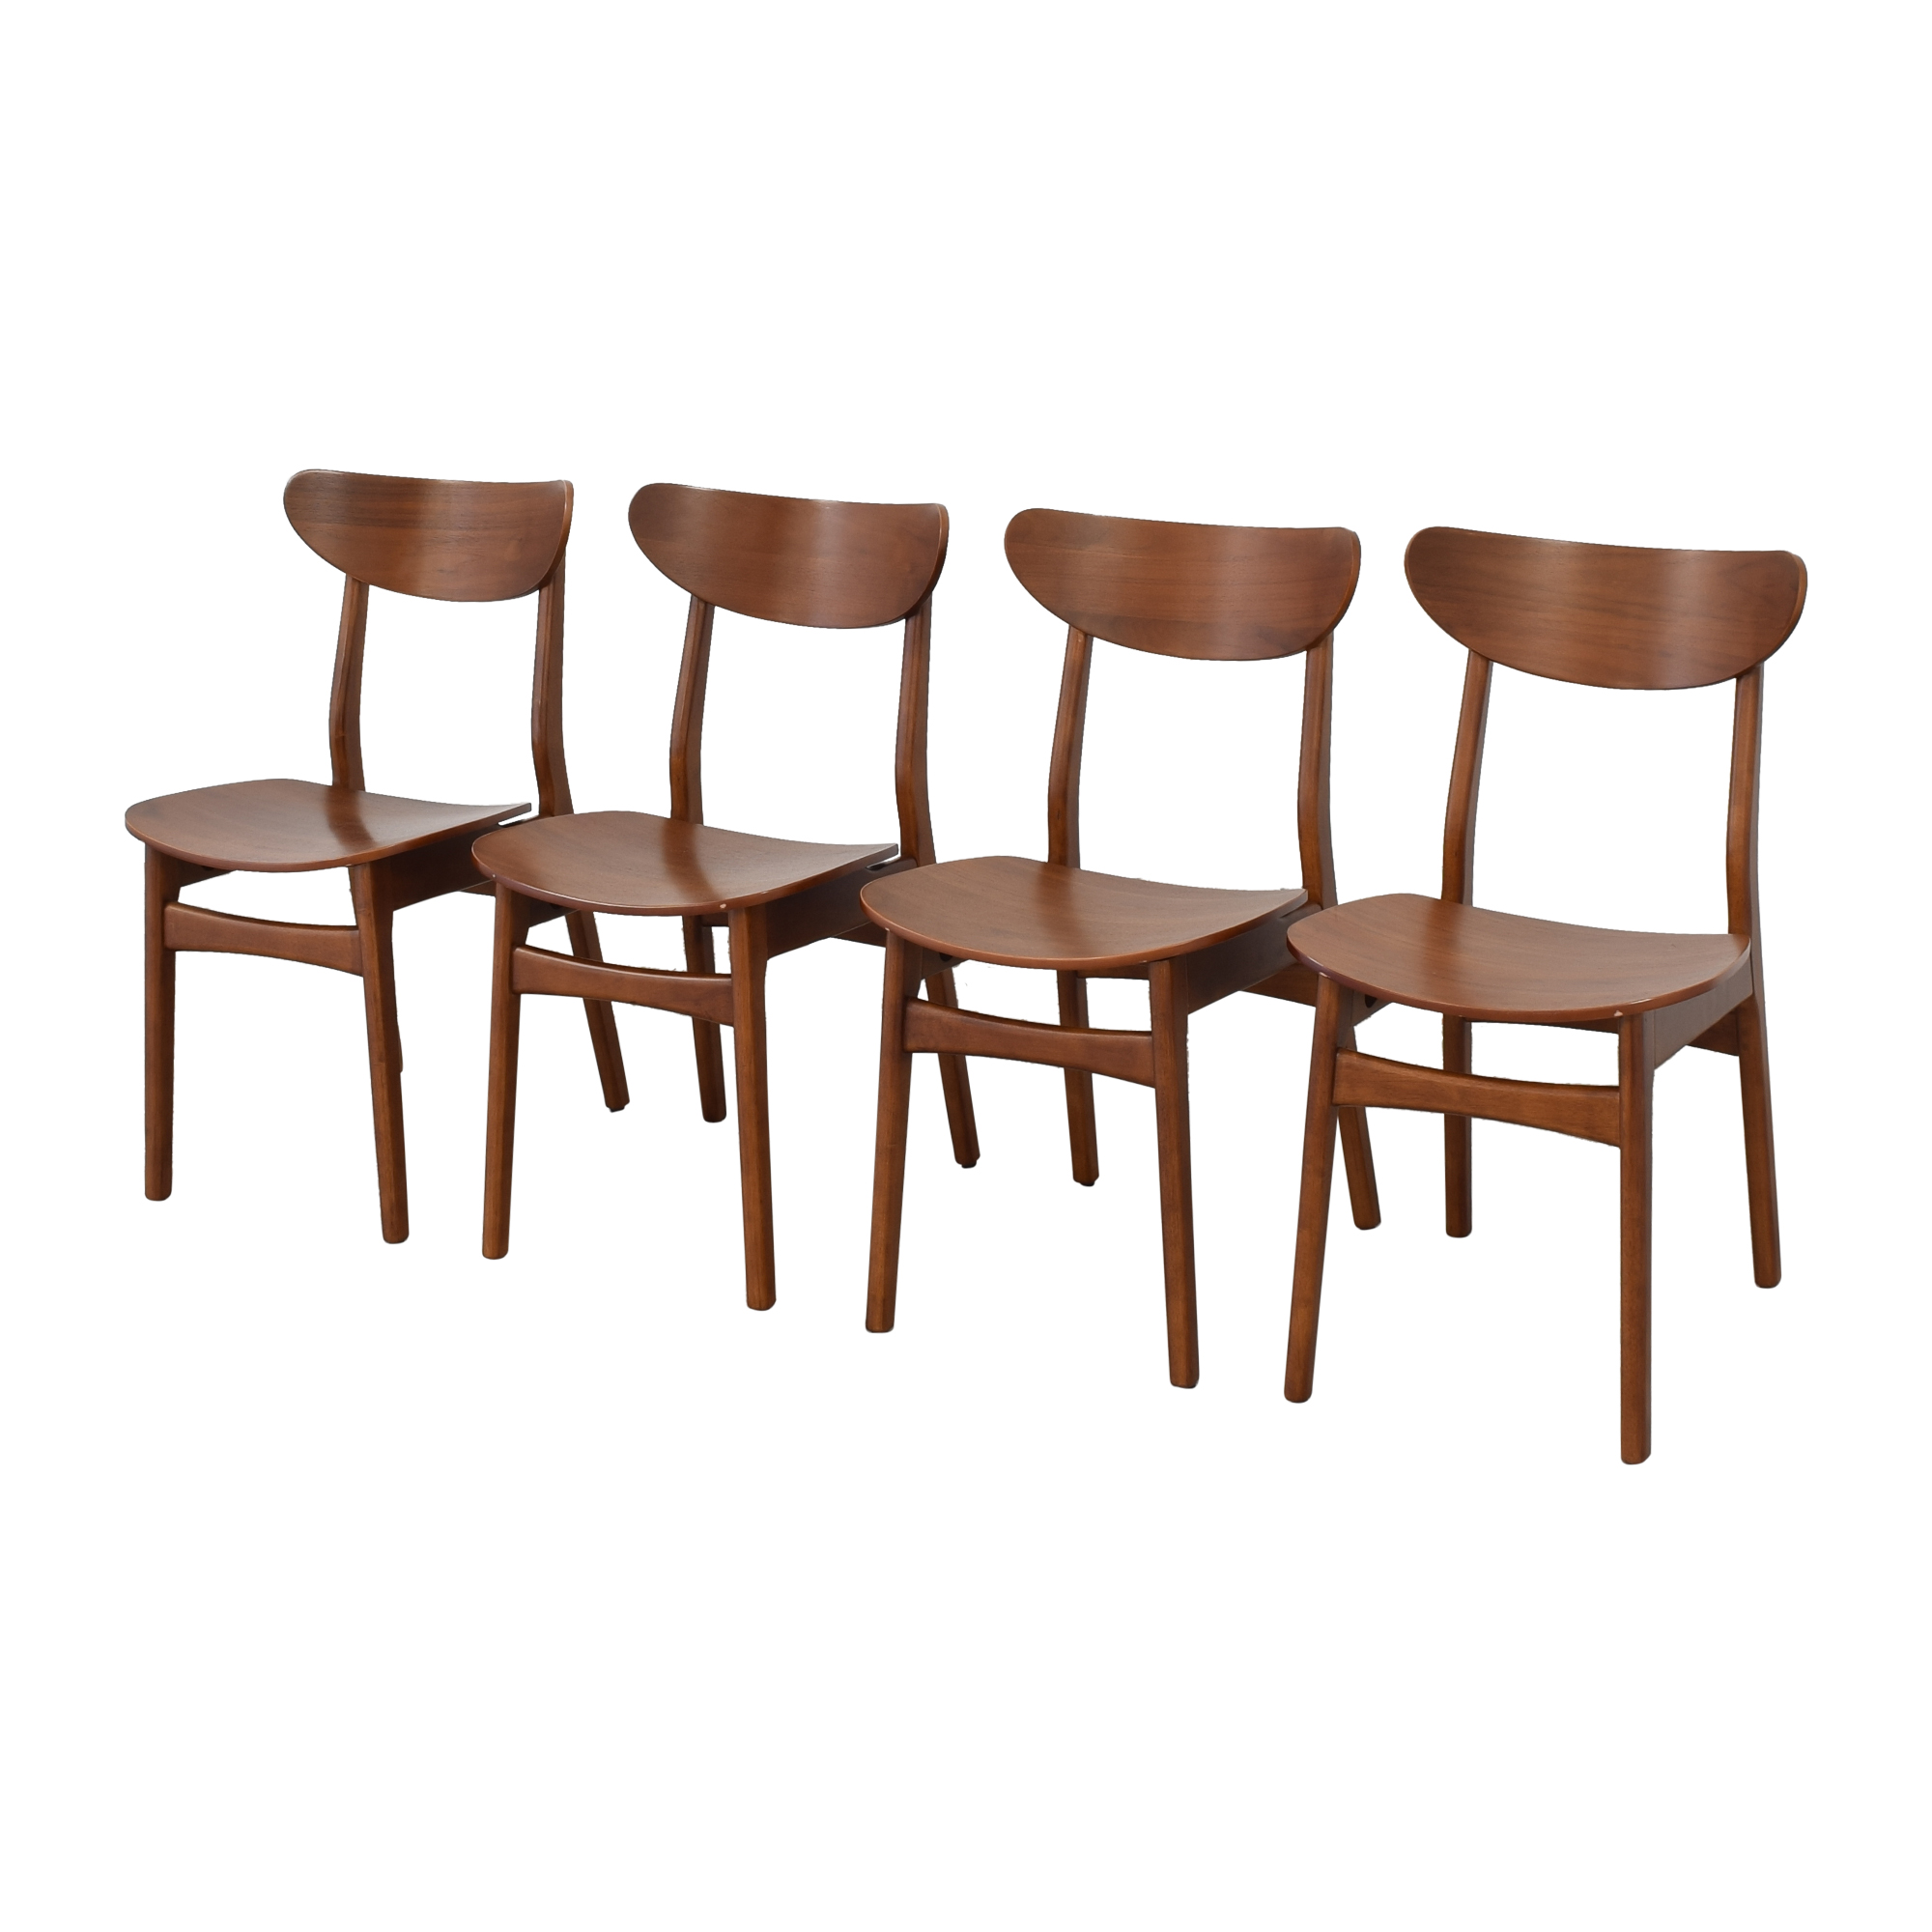 West Elm West Elm Classic Cafe Dining Chairs ma